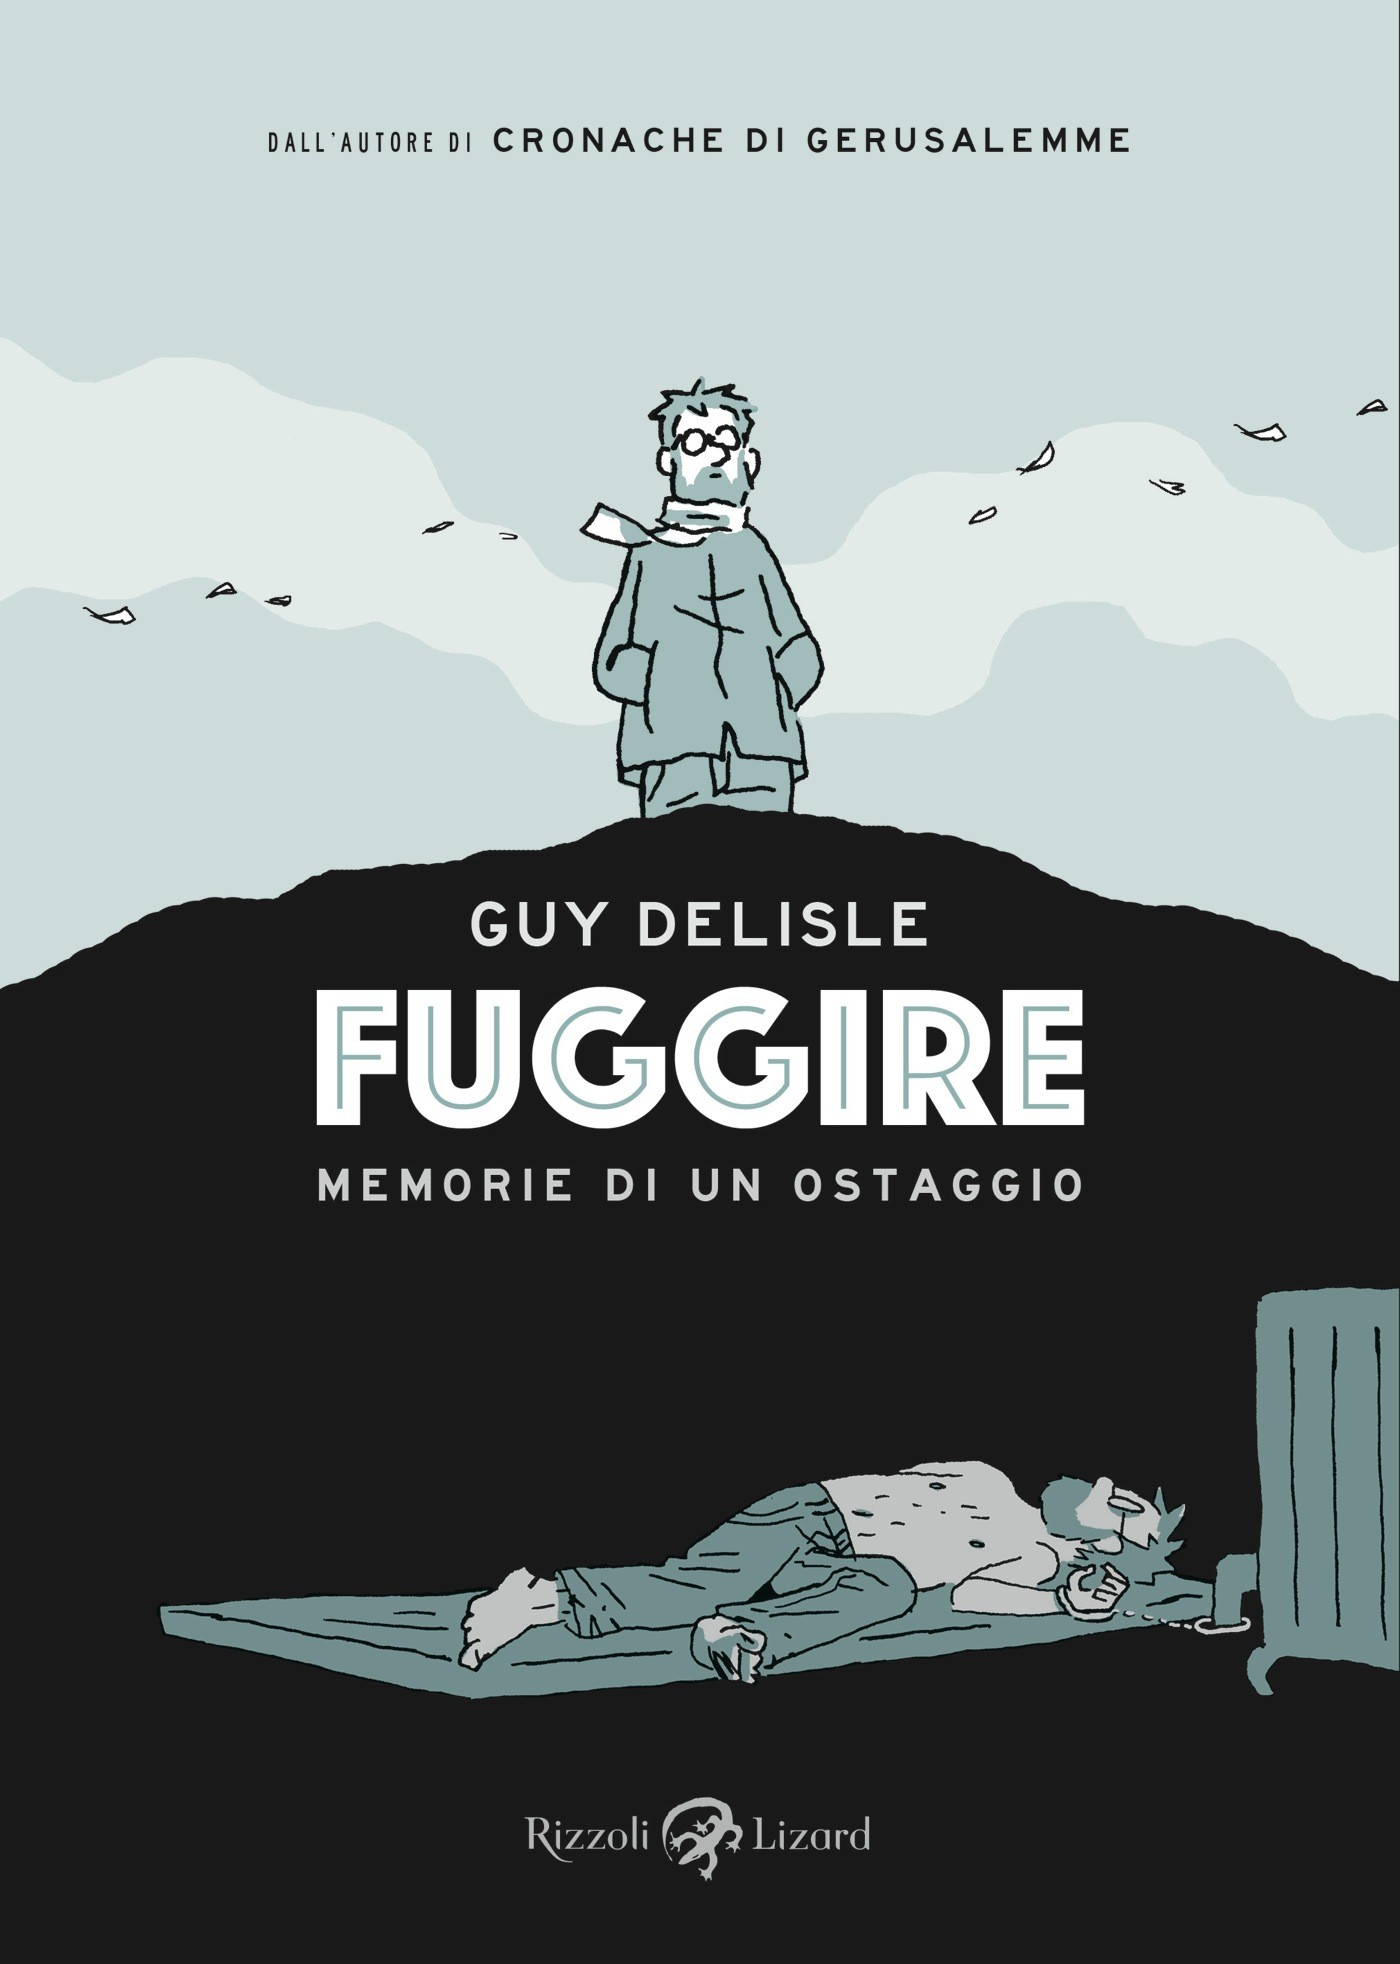 Fuggire Ebook Di Guy Delisle